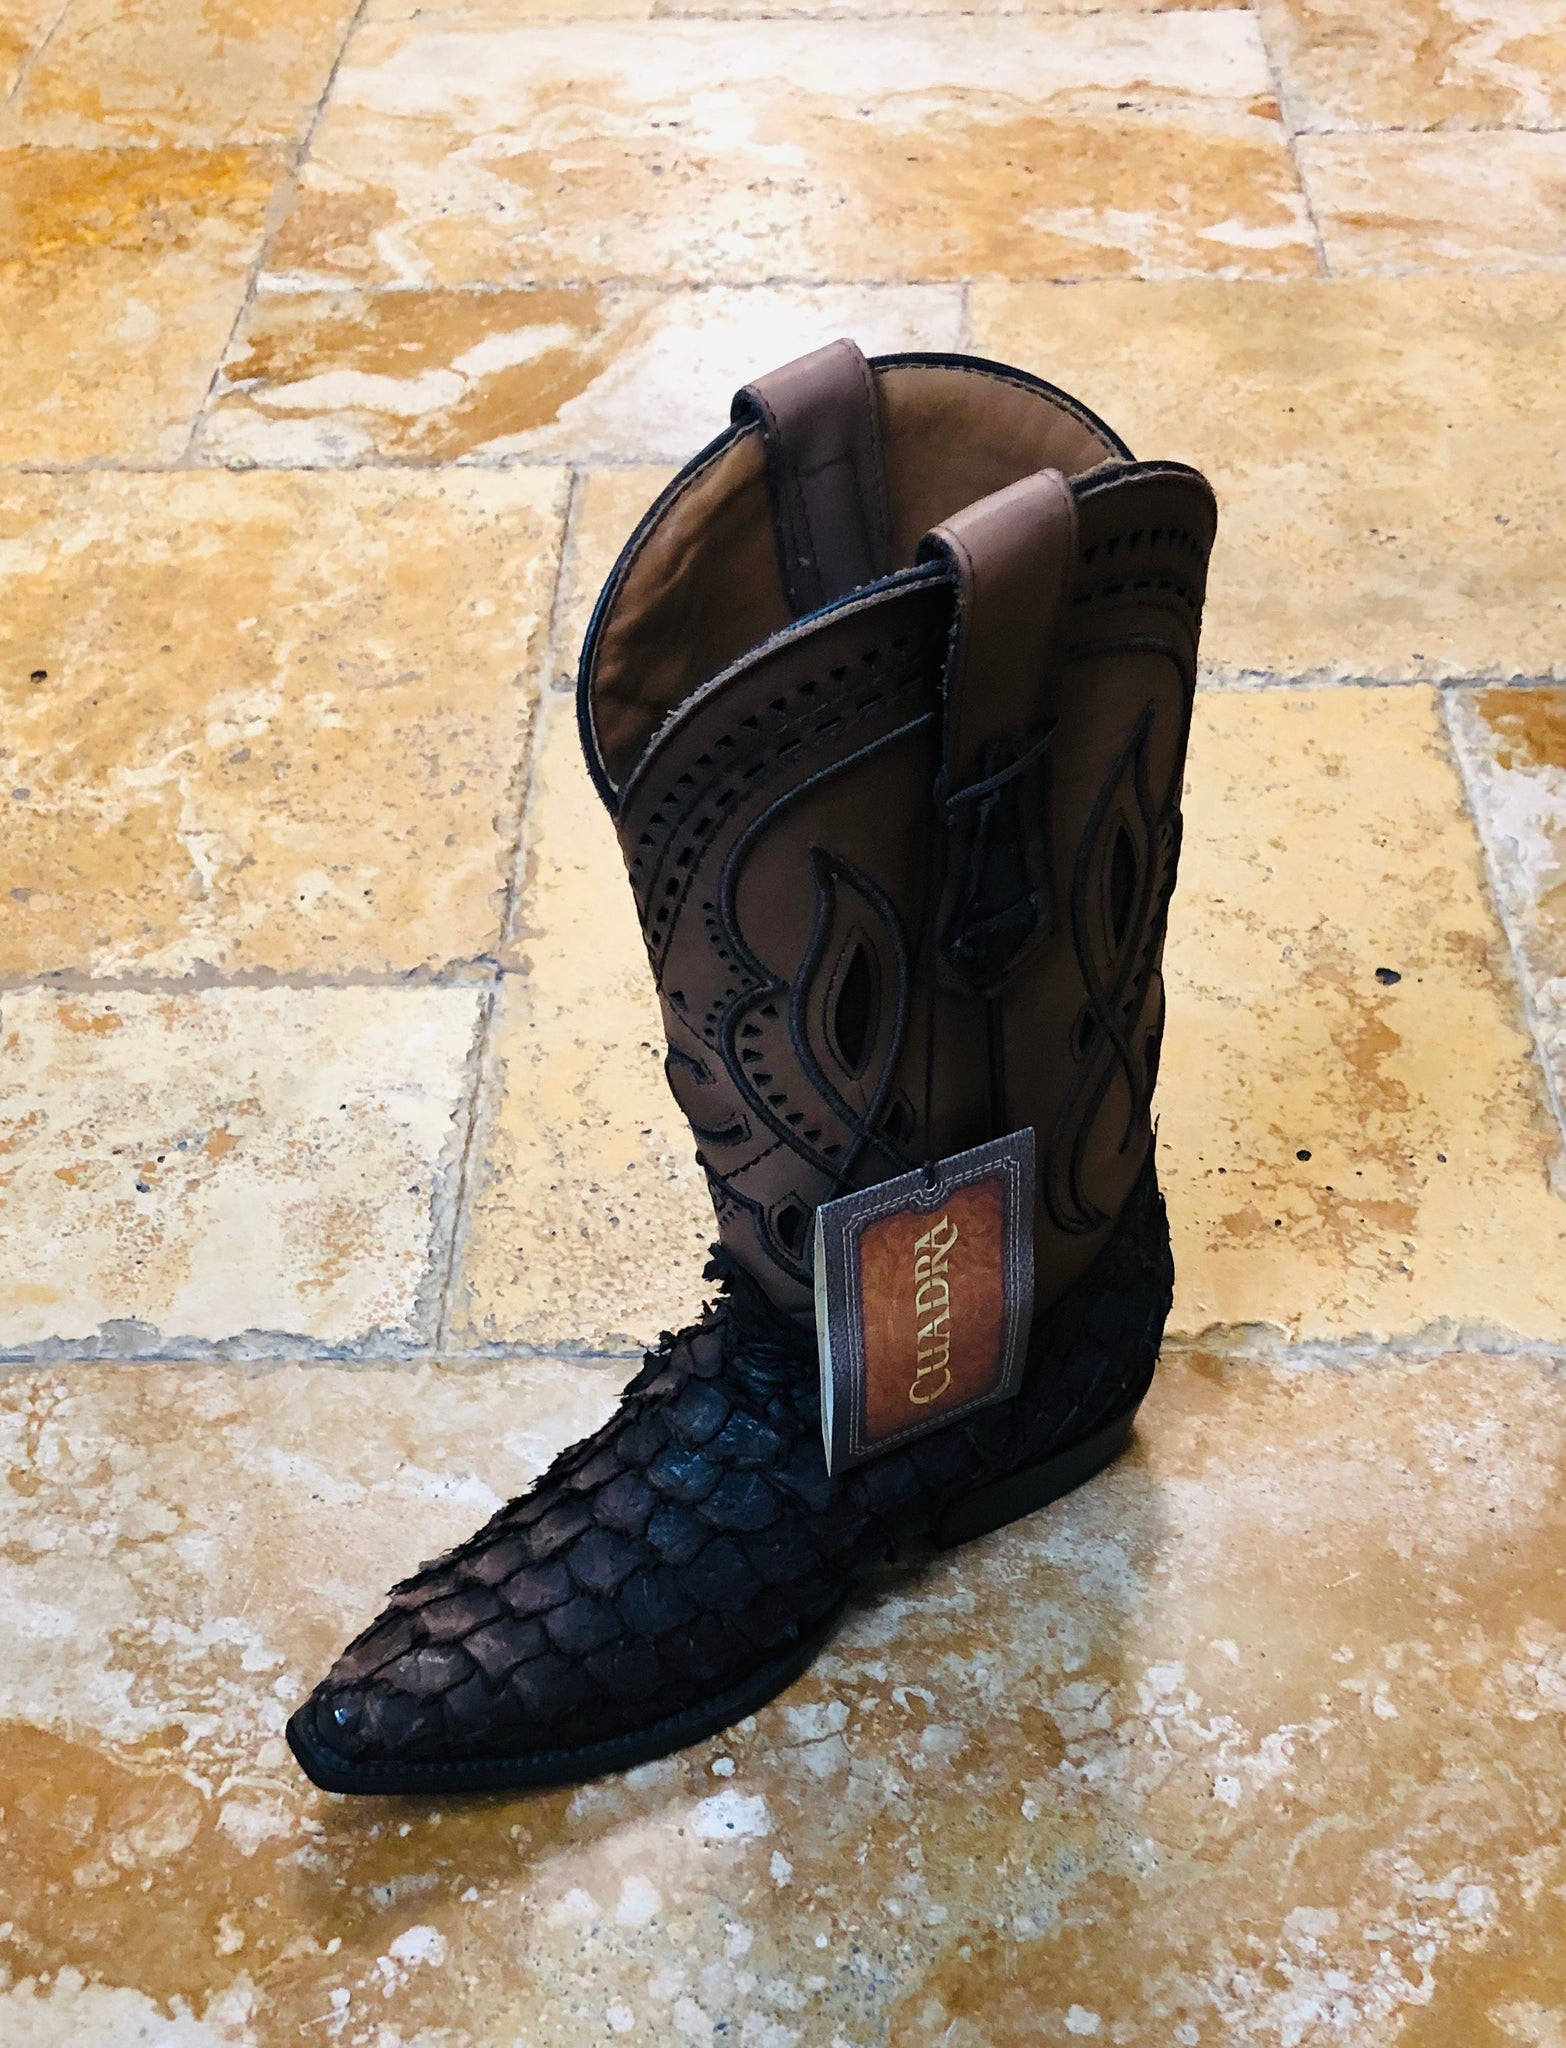 Genuine leather wallet made by Cuadra boots